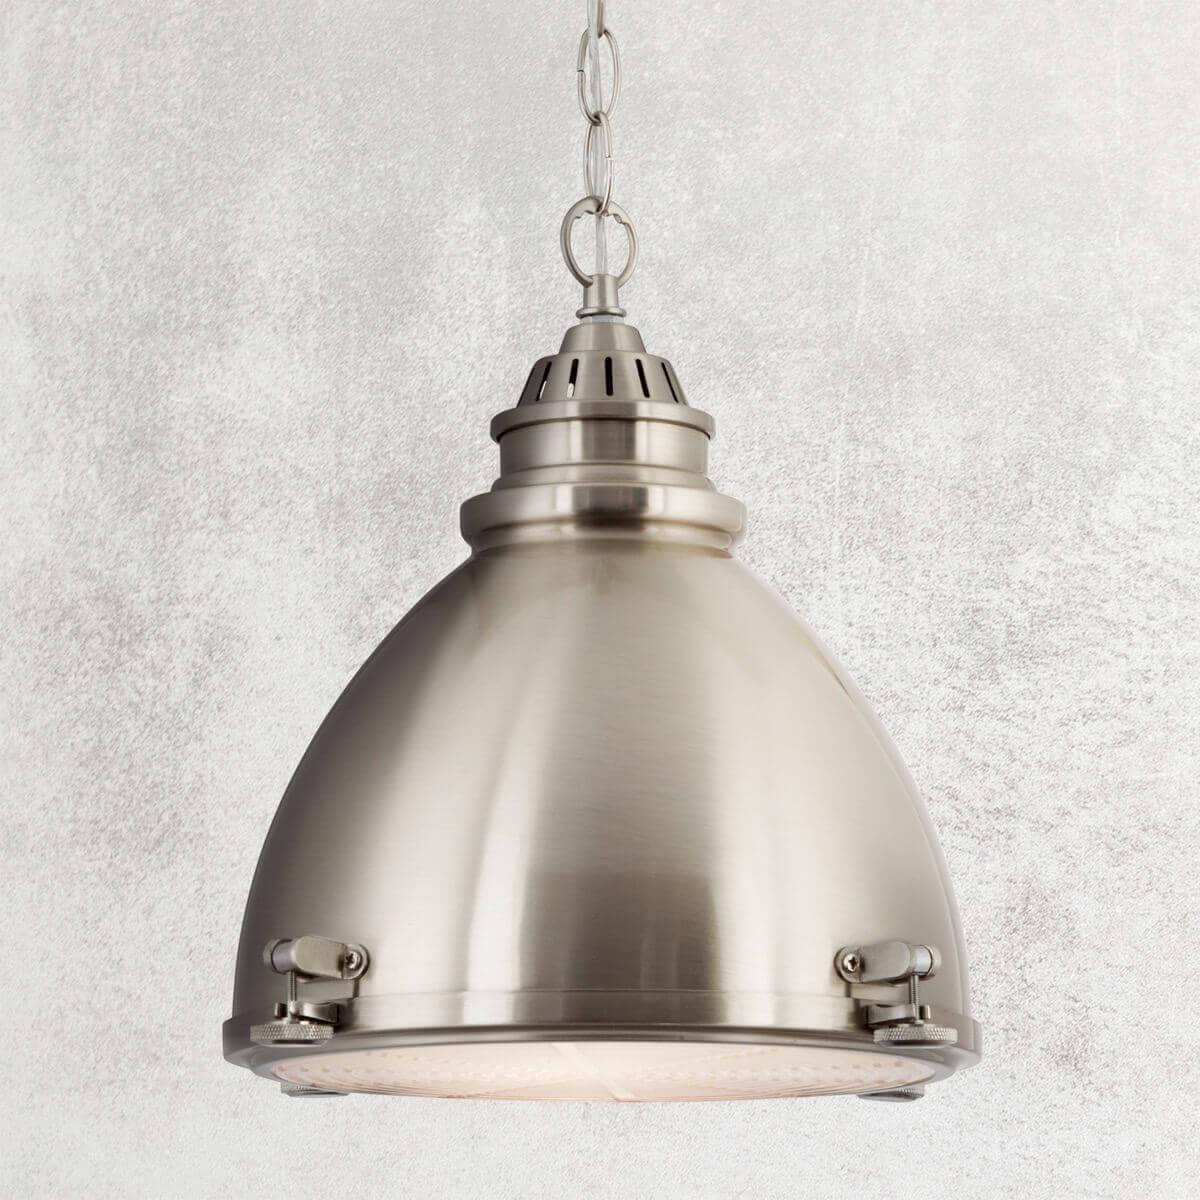 1 LIGHT SATIN NICKEL DOME WITH